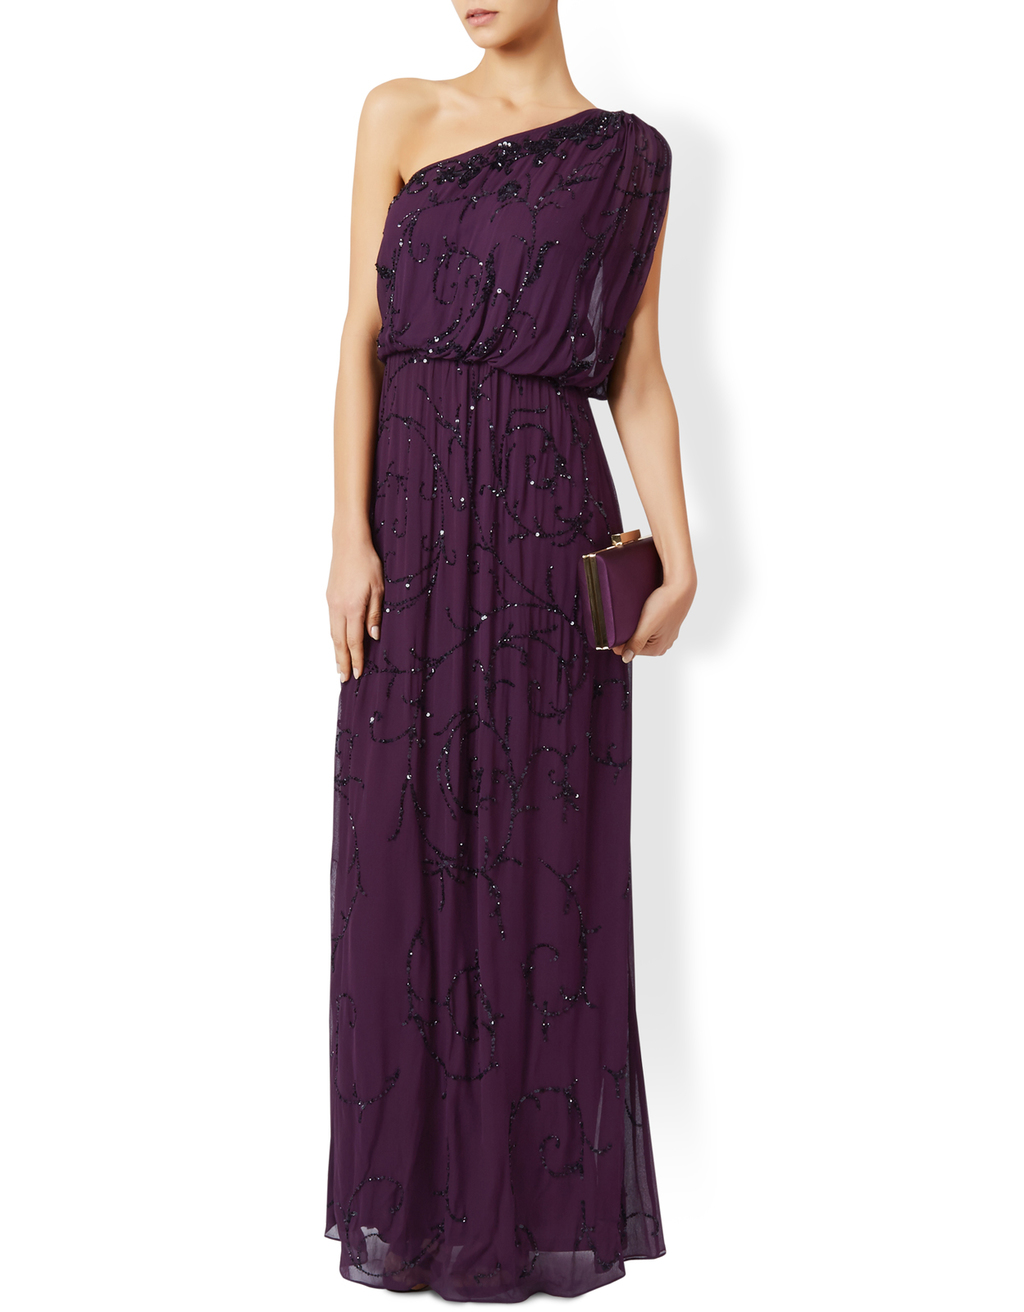 Ember Maxi Dress - fit: loose; pattern: plain; sleeve style: sleeveless; style: asymmetric (top); neckline: asymmetric; predominant colour: aubergine; occasions: evening; length: floor length; fibres: polyester/polyamide - 100%; sleeve length: sleeveless; pattern type: fabric; texture group: jersey - stretchy/drapey; embellishment: beading; season: a/w 2016